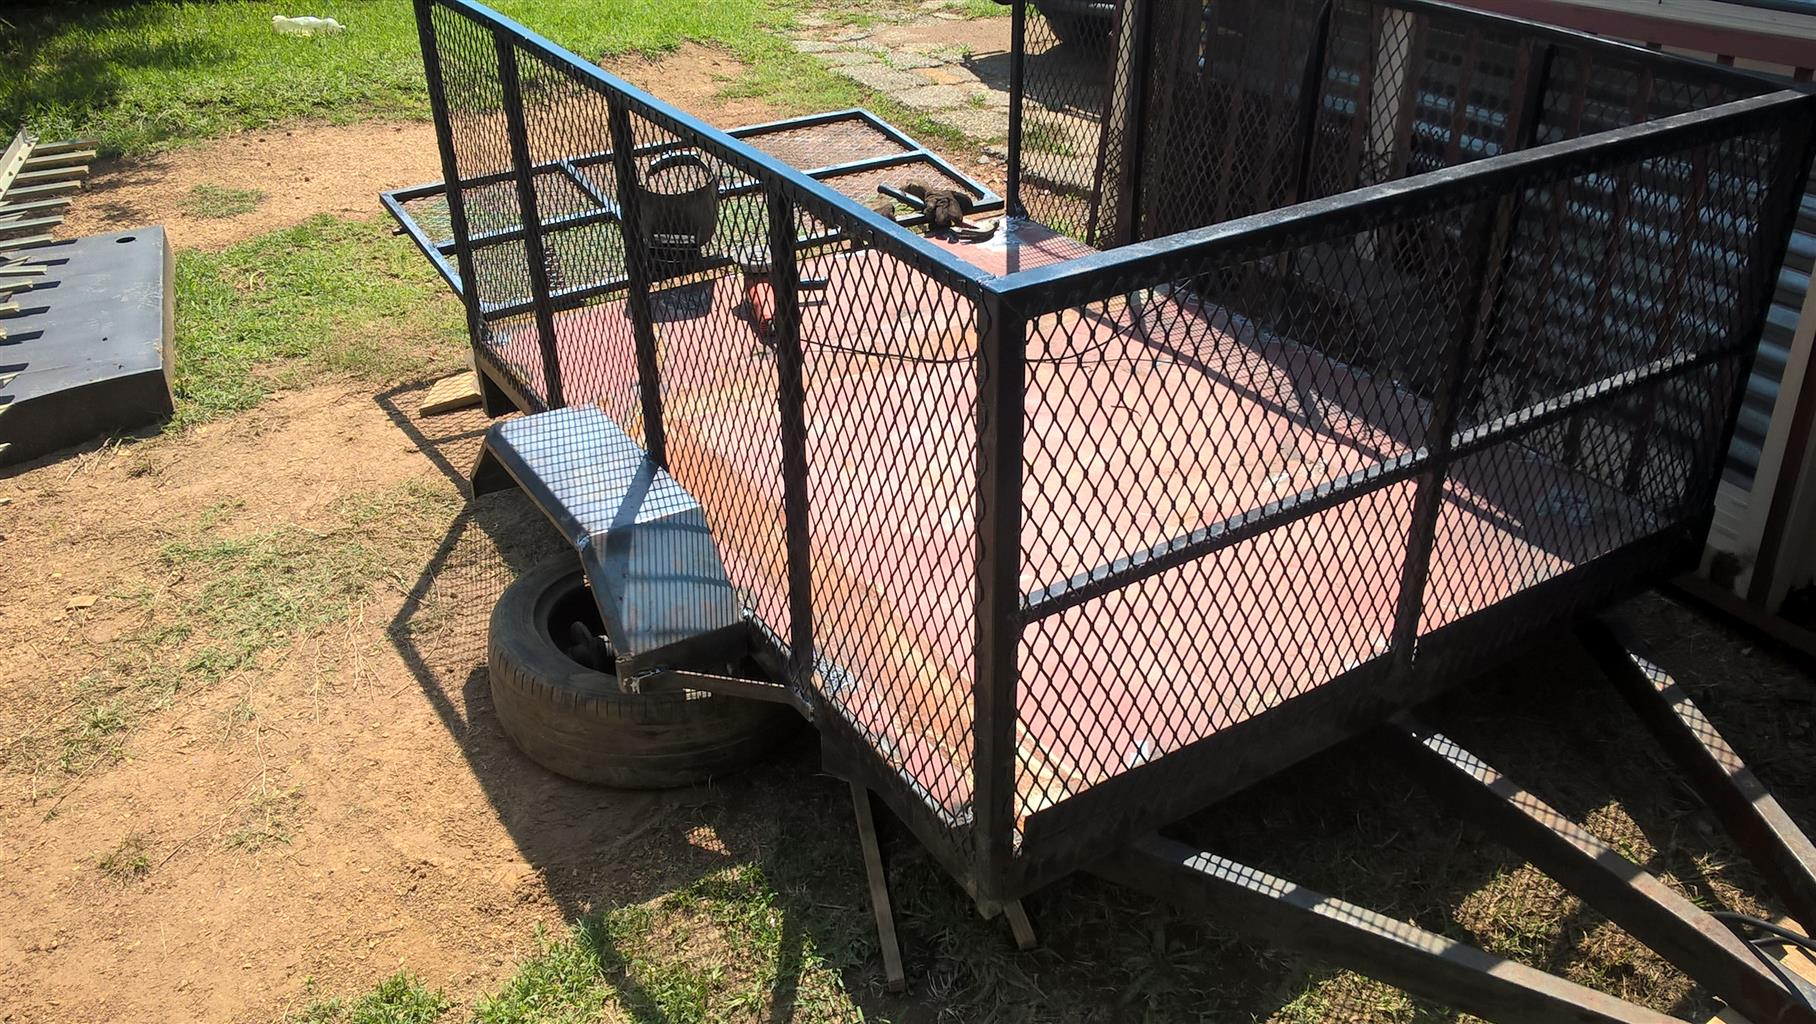 Trailer for sale (new no wheels)